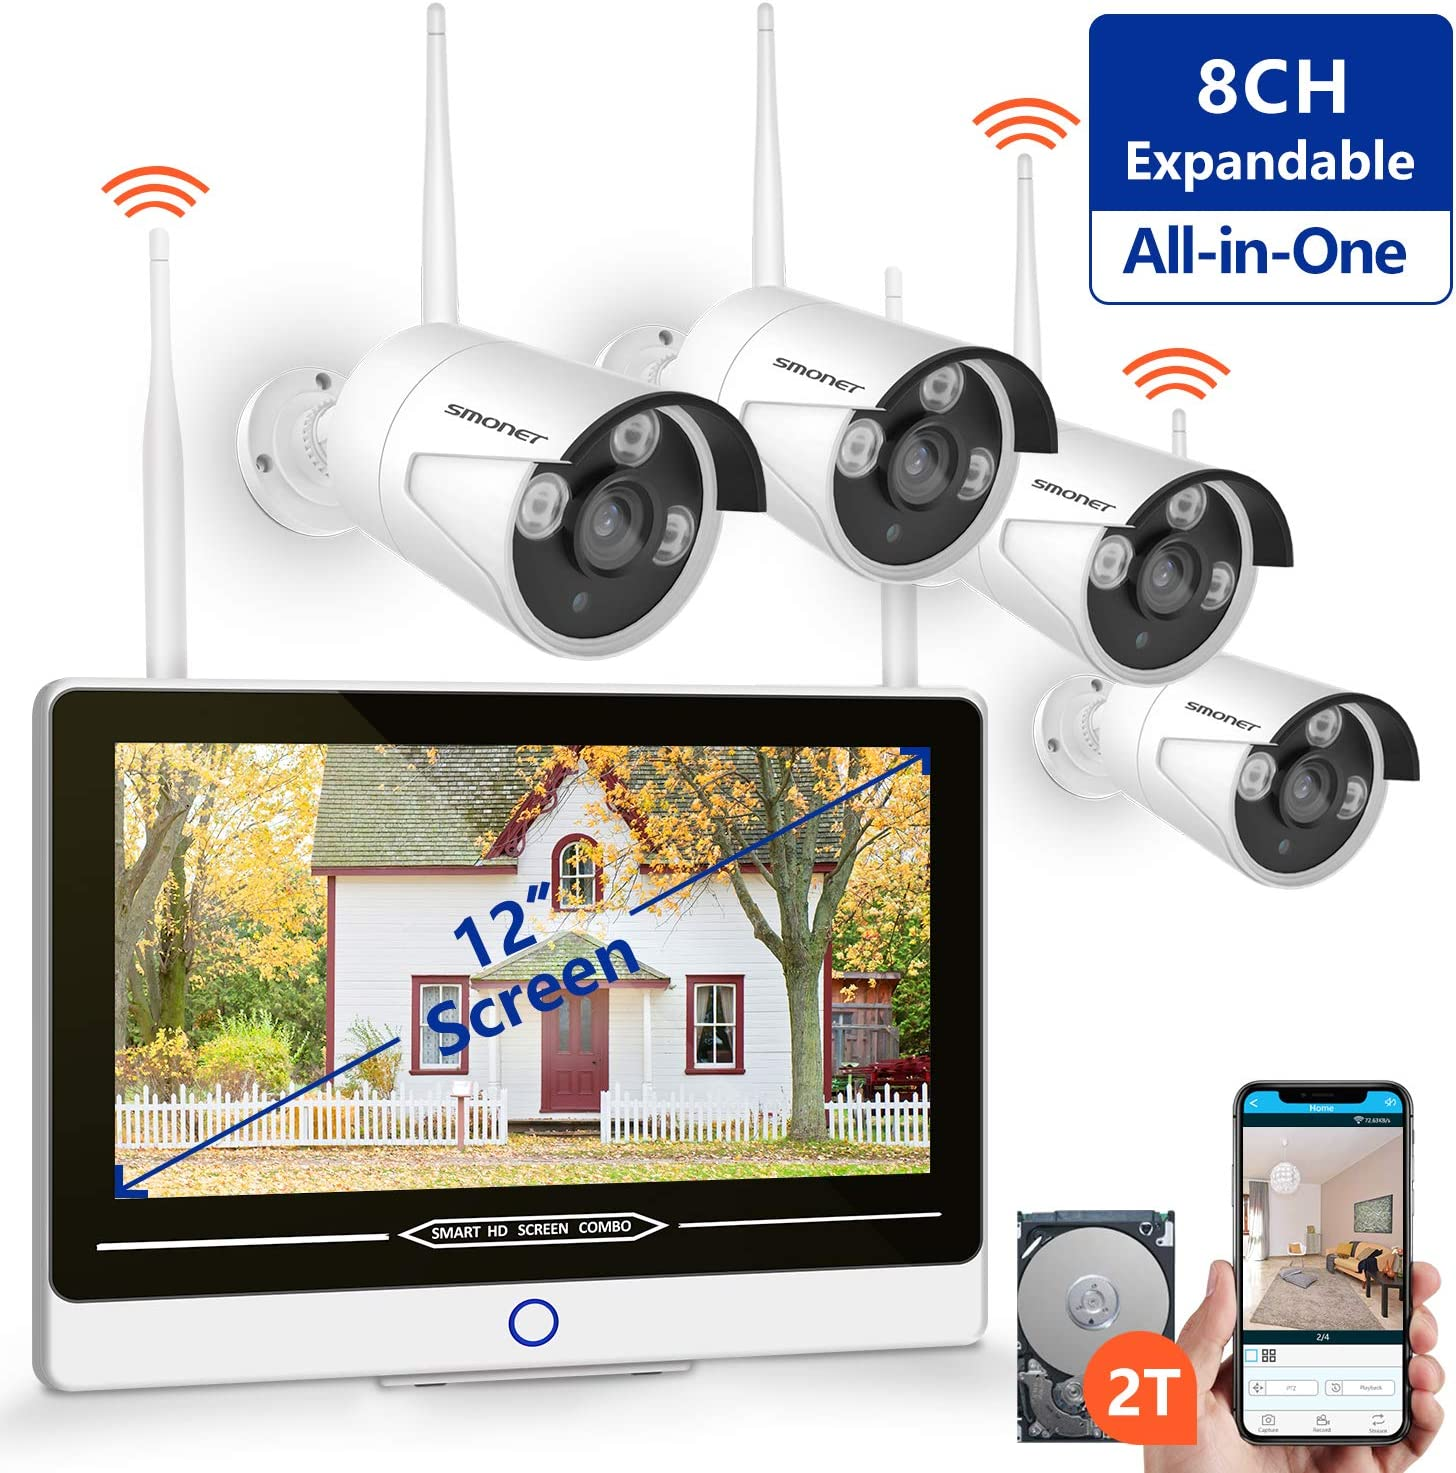 2019 New All in One with 12 Monitor 1080P Security Camera System Wireless,SMONET 8-Channel Outdoor Home Camera System 2TB Hard Drive ,4pcs 2.0MP 1080P Waterproof Wireless IP Cameras,P2P,Free APP